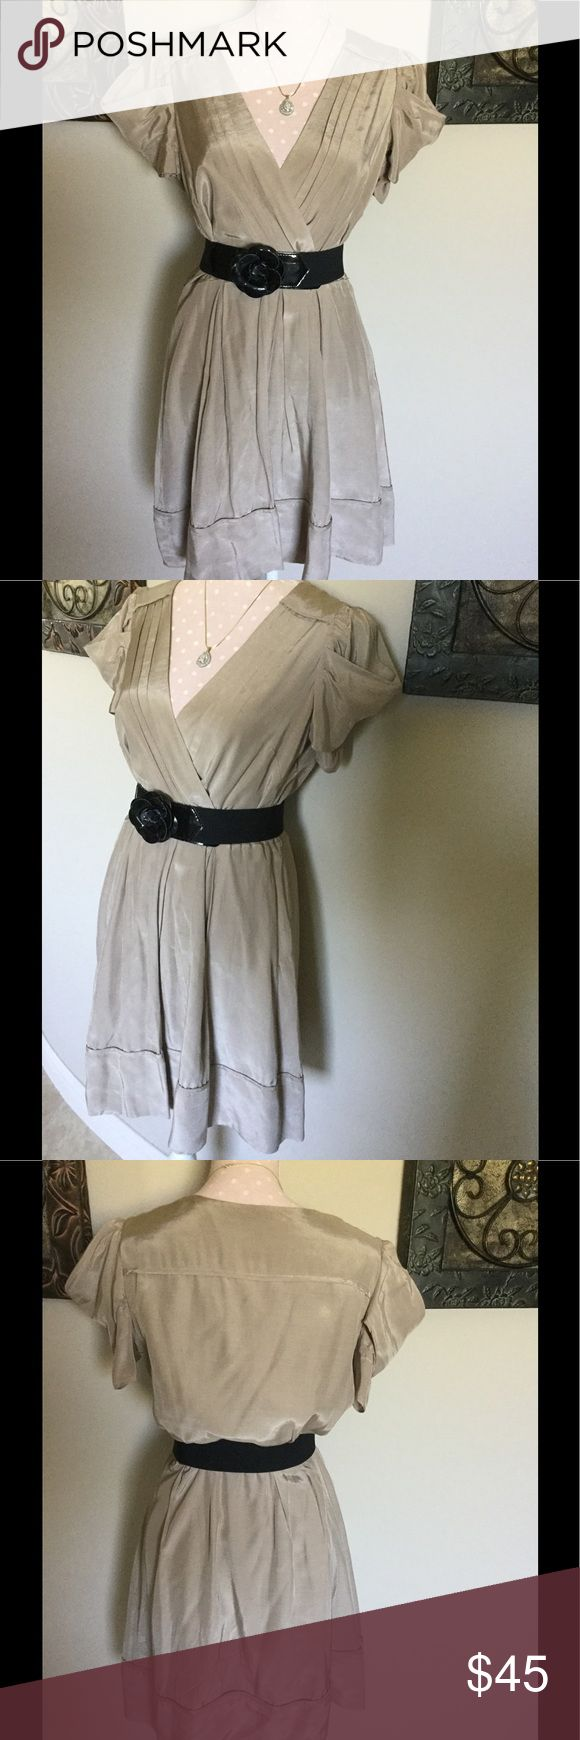 Jessica Simpson Size 8 Dress Jessica Simpson Dress Size 8 I lost weight so my loss is your gain! MY Belt Is NOT included Jessica Simpson Dresses